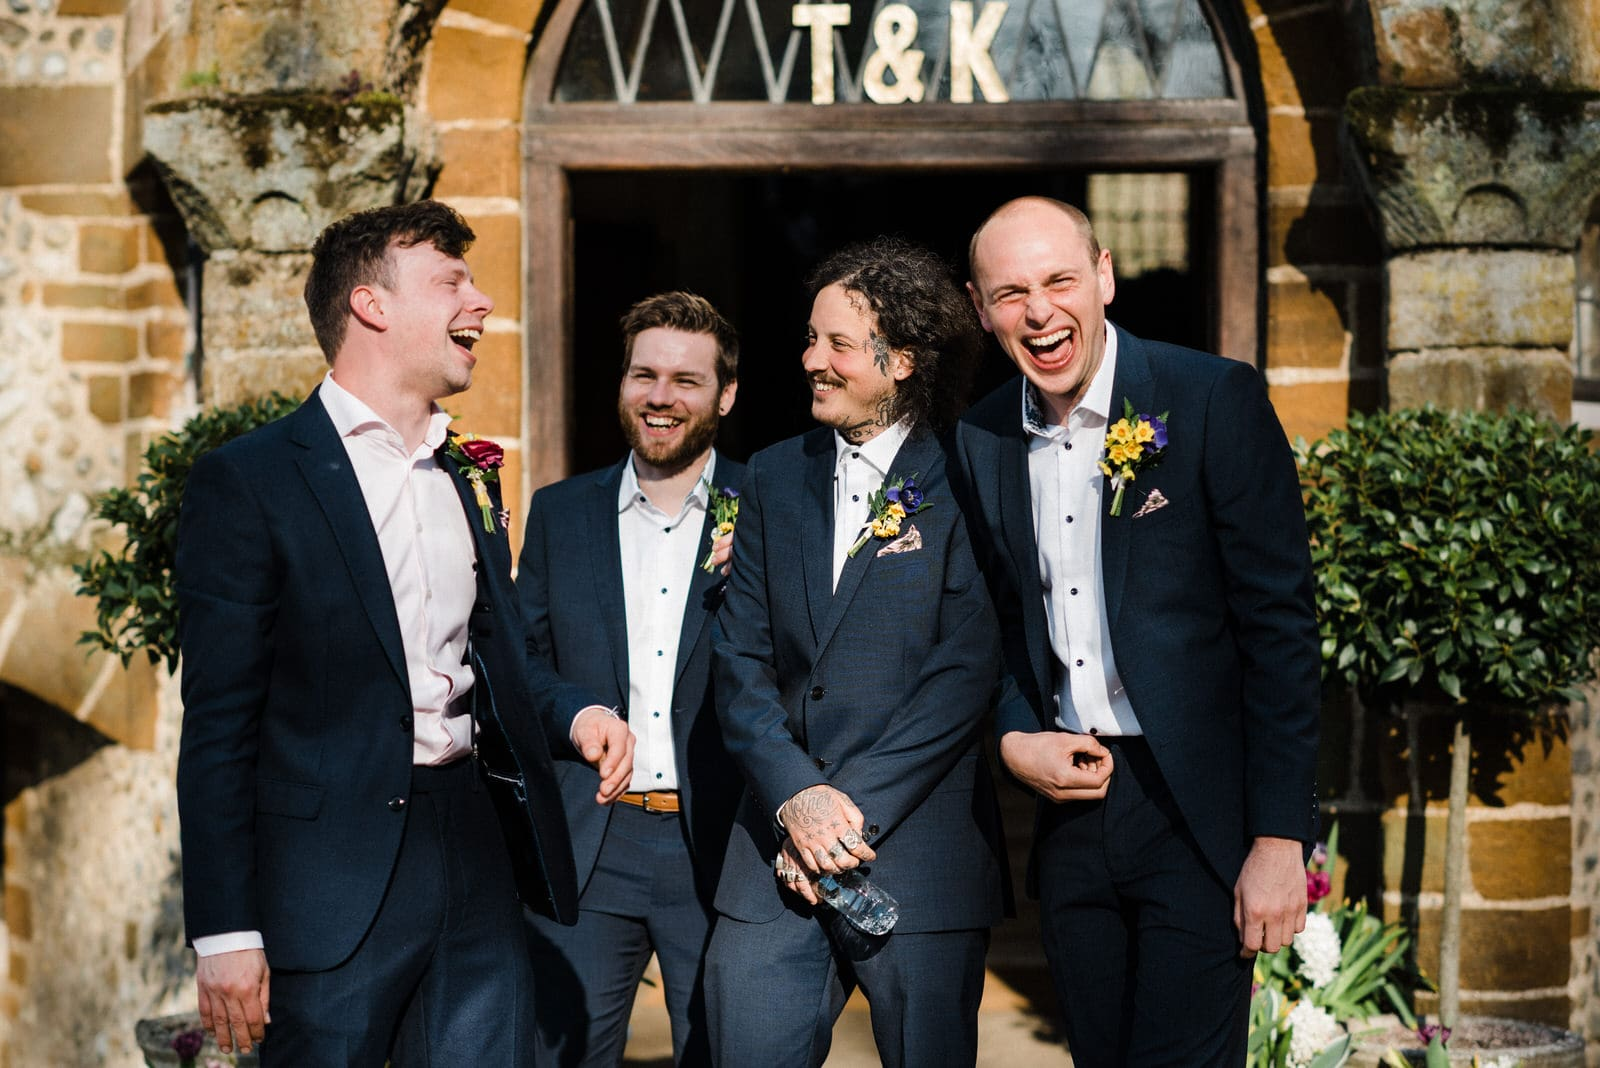 Groom & his groomsmen at Voewood wedding